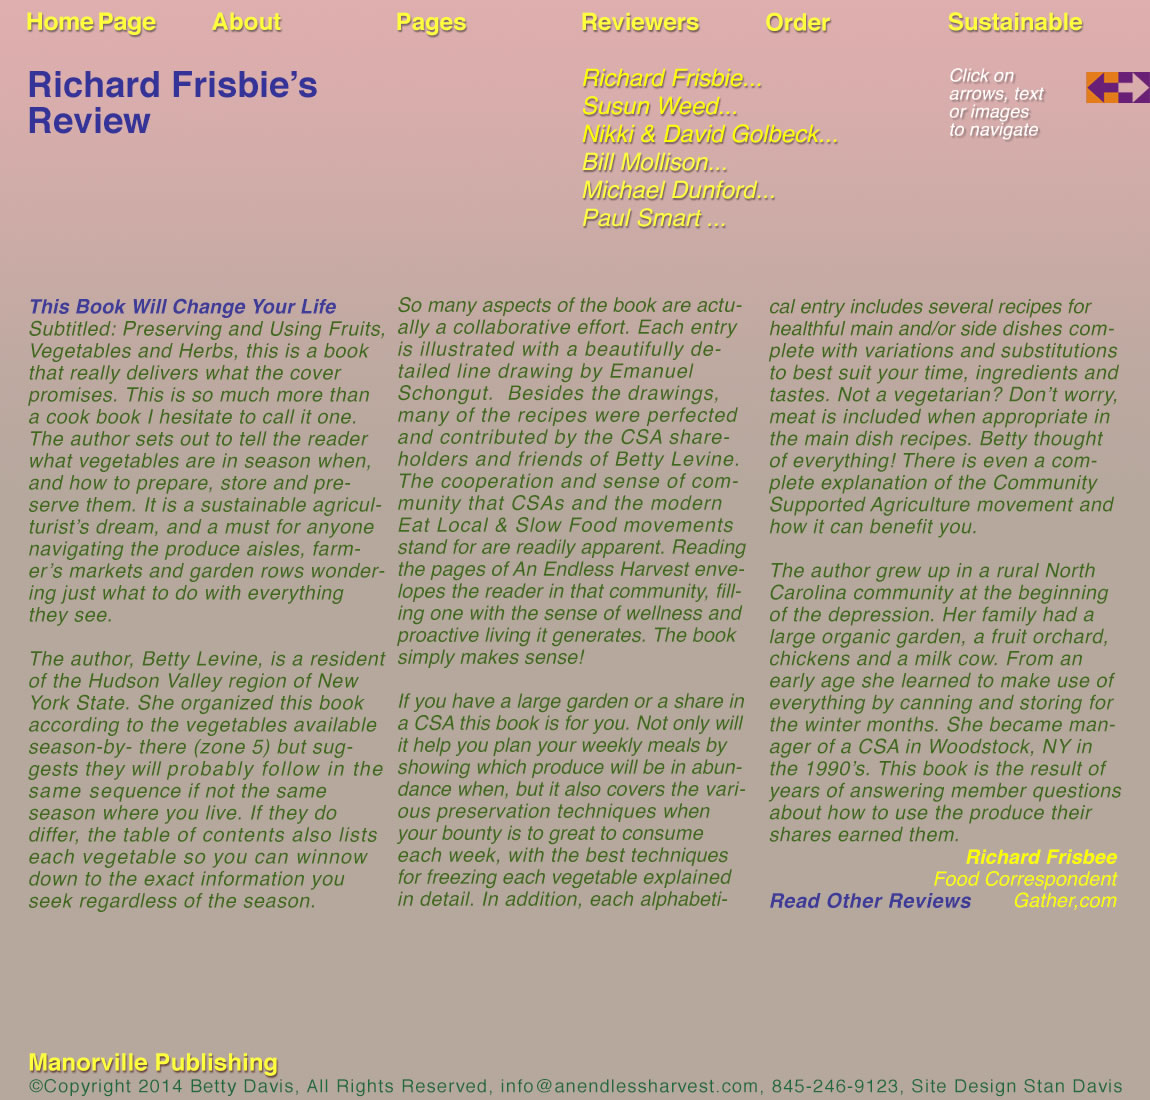 Richard Frisbie's Review